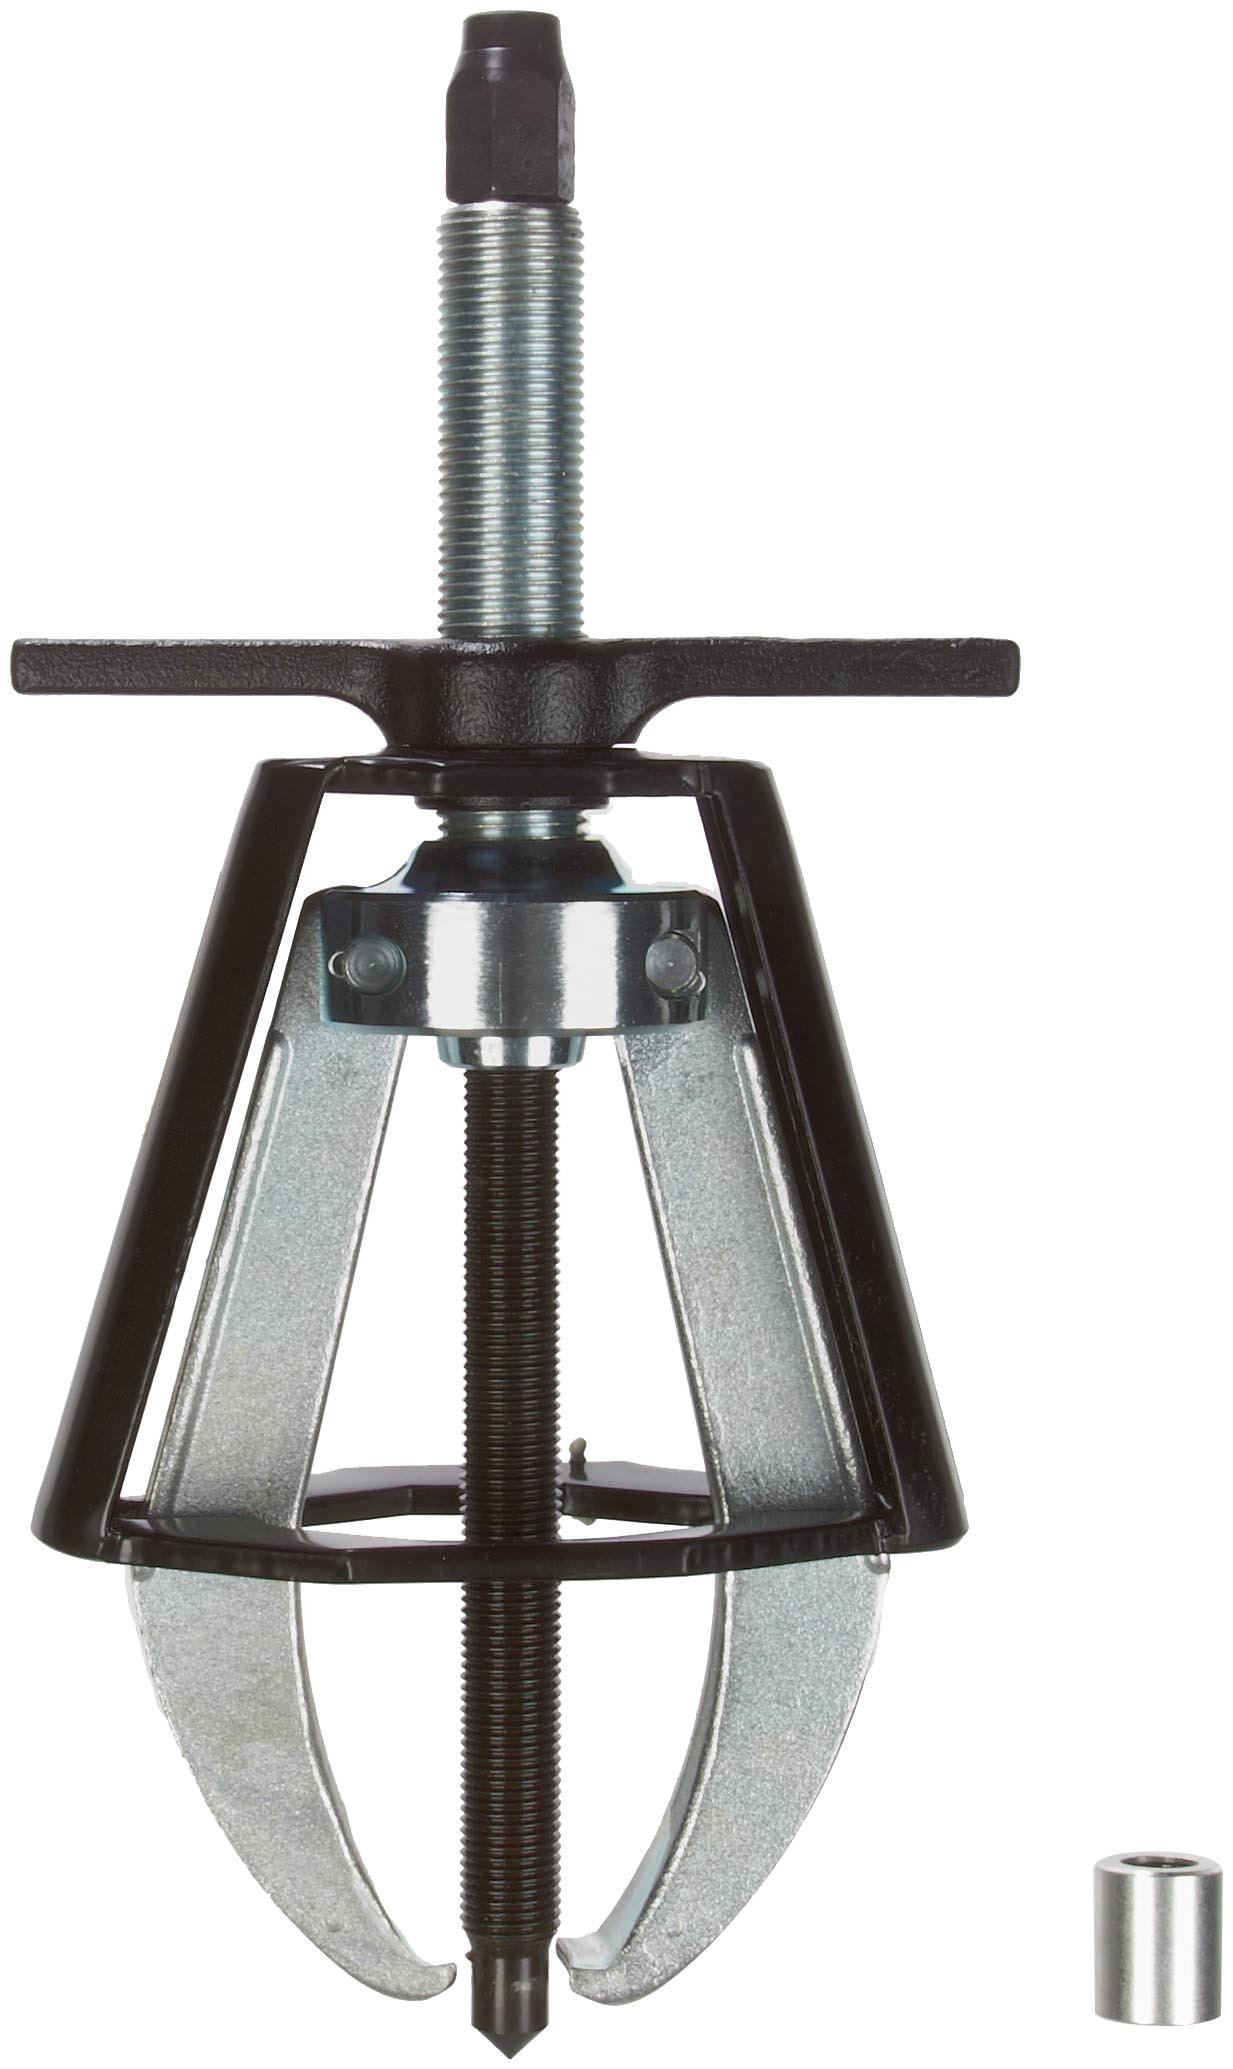 Posi Lock 206 Manual Puller, 2 Jaws, 6 tons Capacity, 6'' Reach, 1/2'' - 7'' Spread Range, 13.1/3'' Overall Length